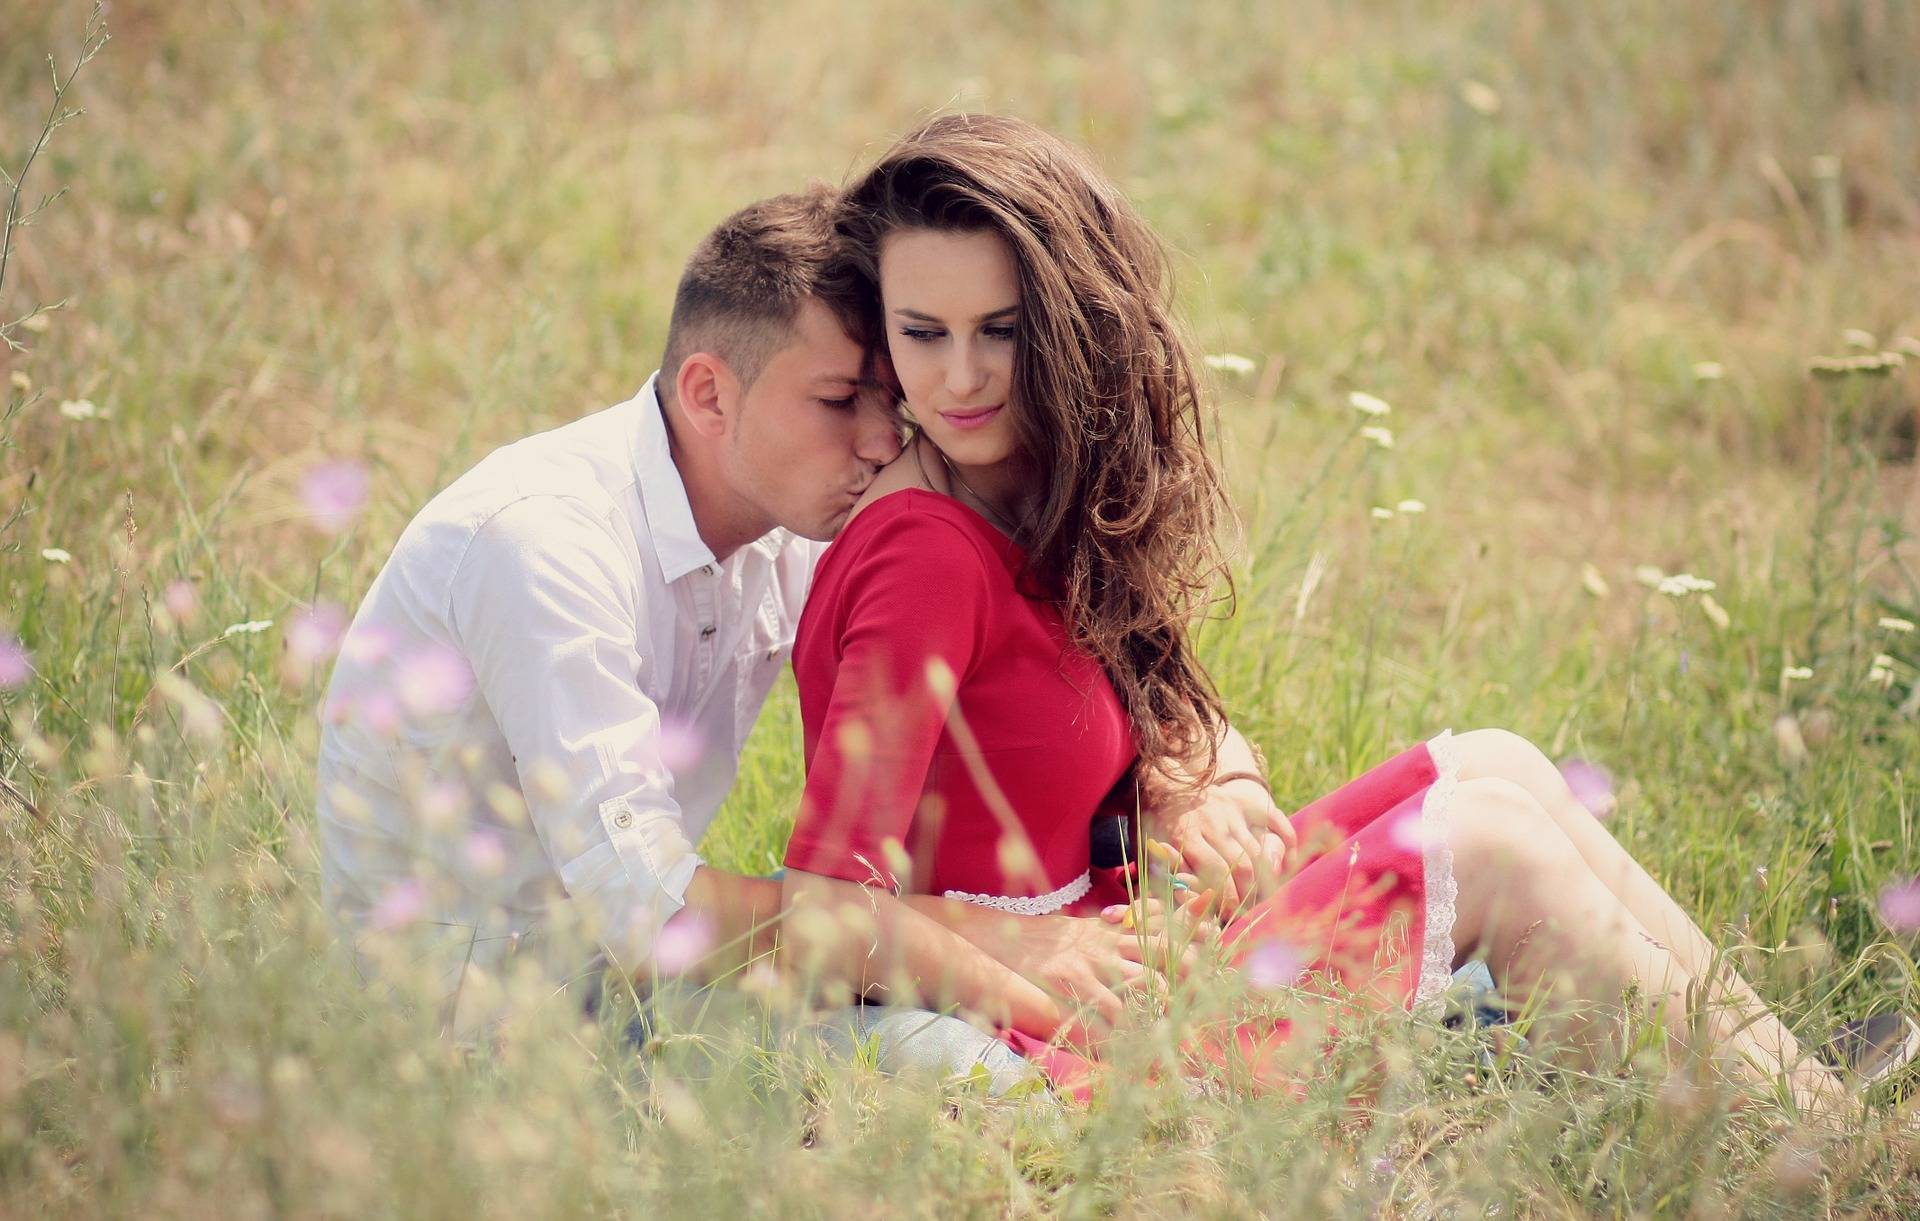 Romance: How to Make it Last a Lifetime In a Relationship